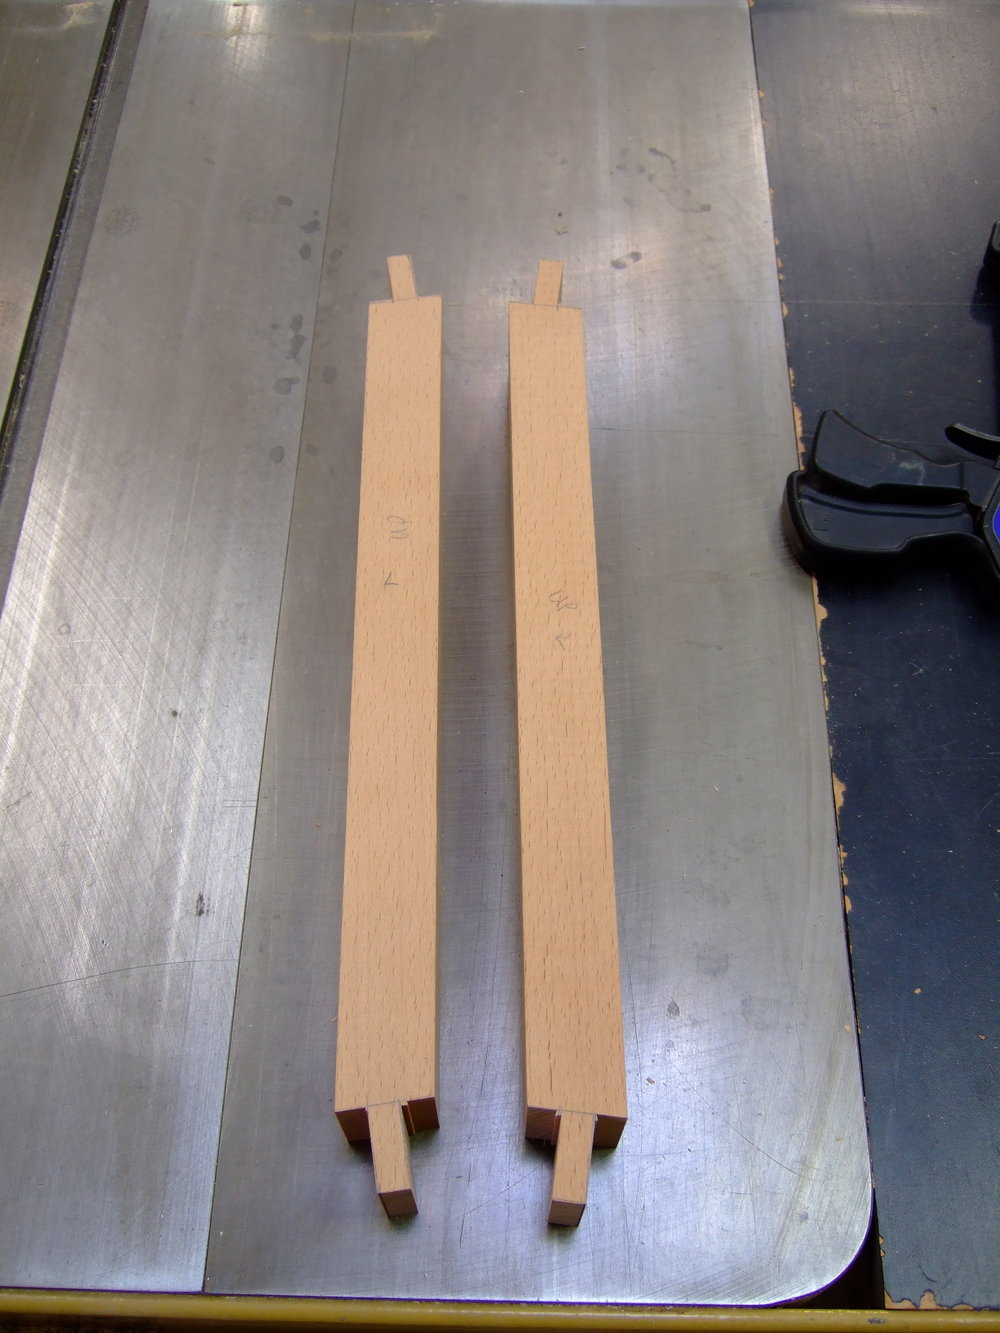 Tenons cut on the table saw but they still need to be trimmed and fit by hand.